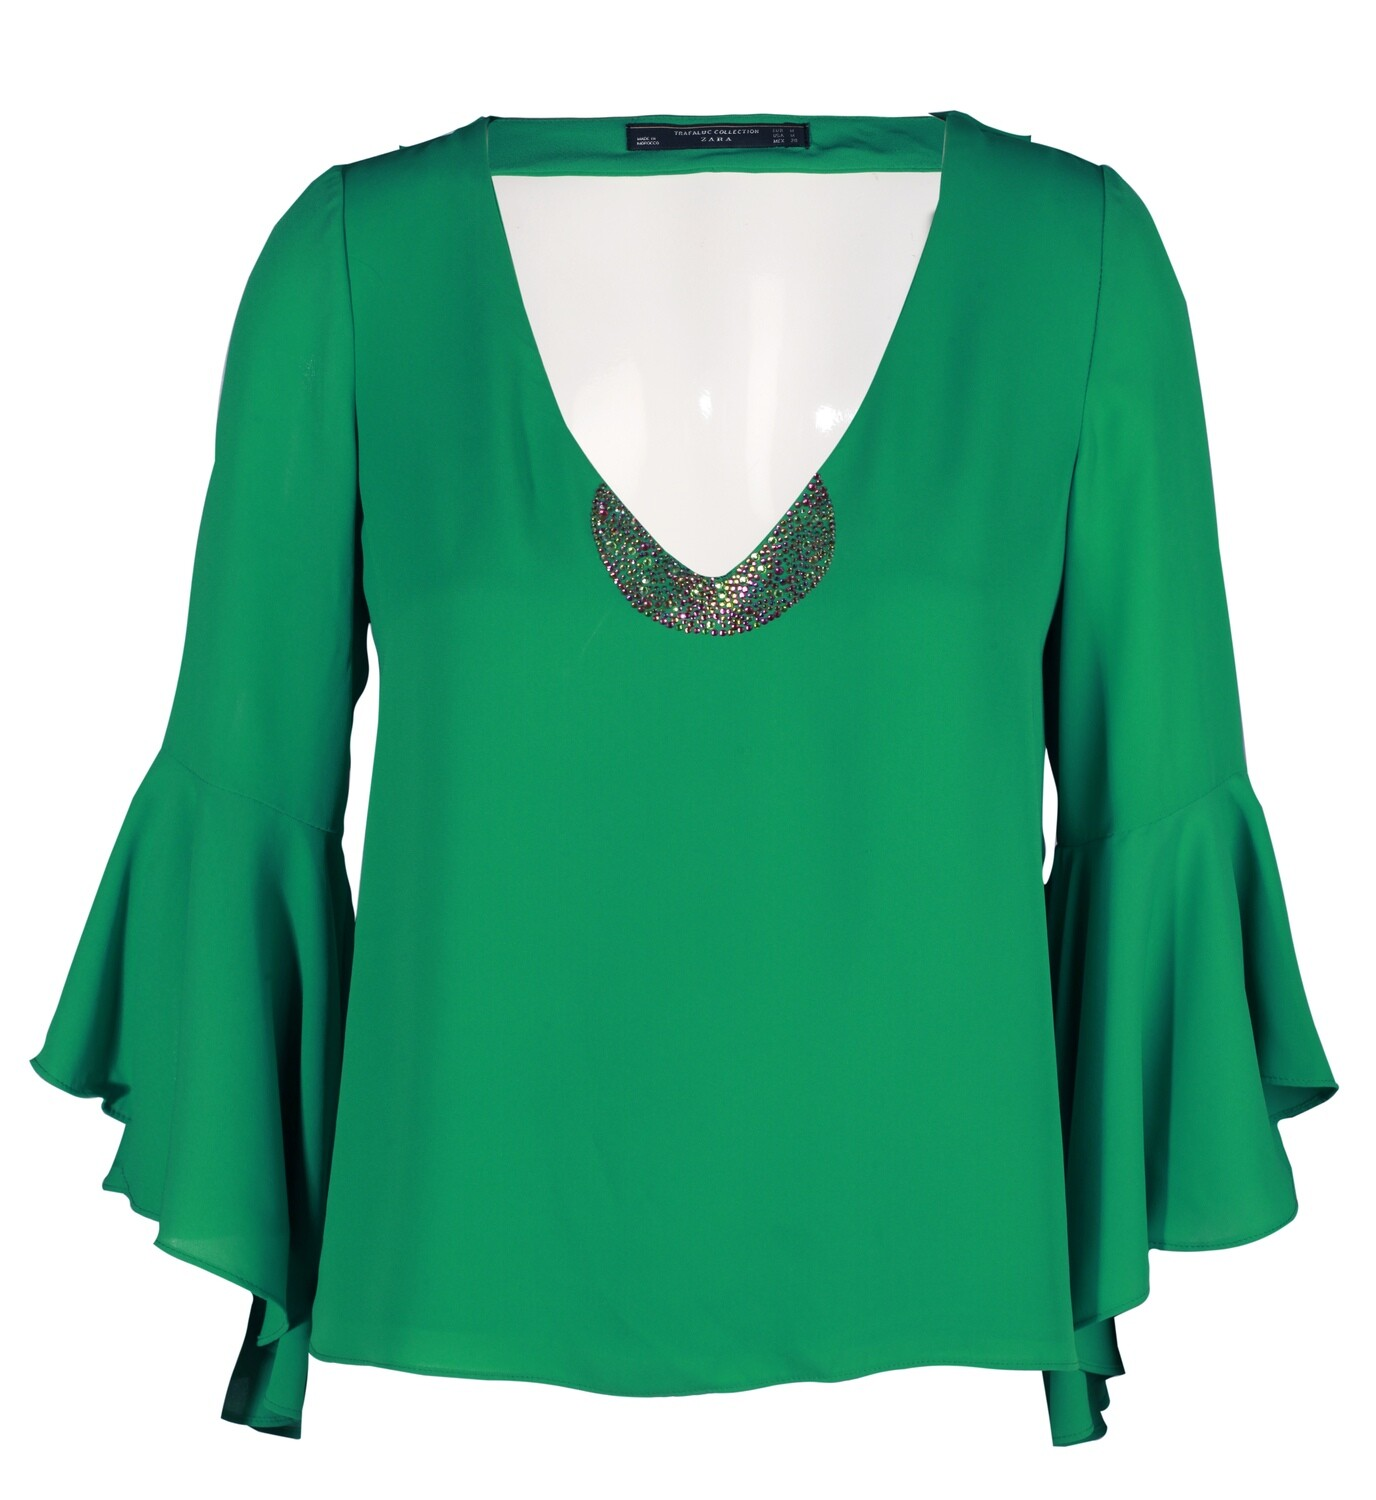 DYI emerald green shirt with crystal